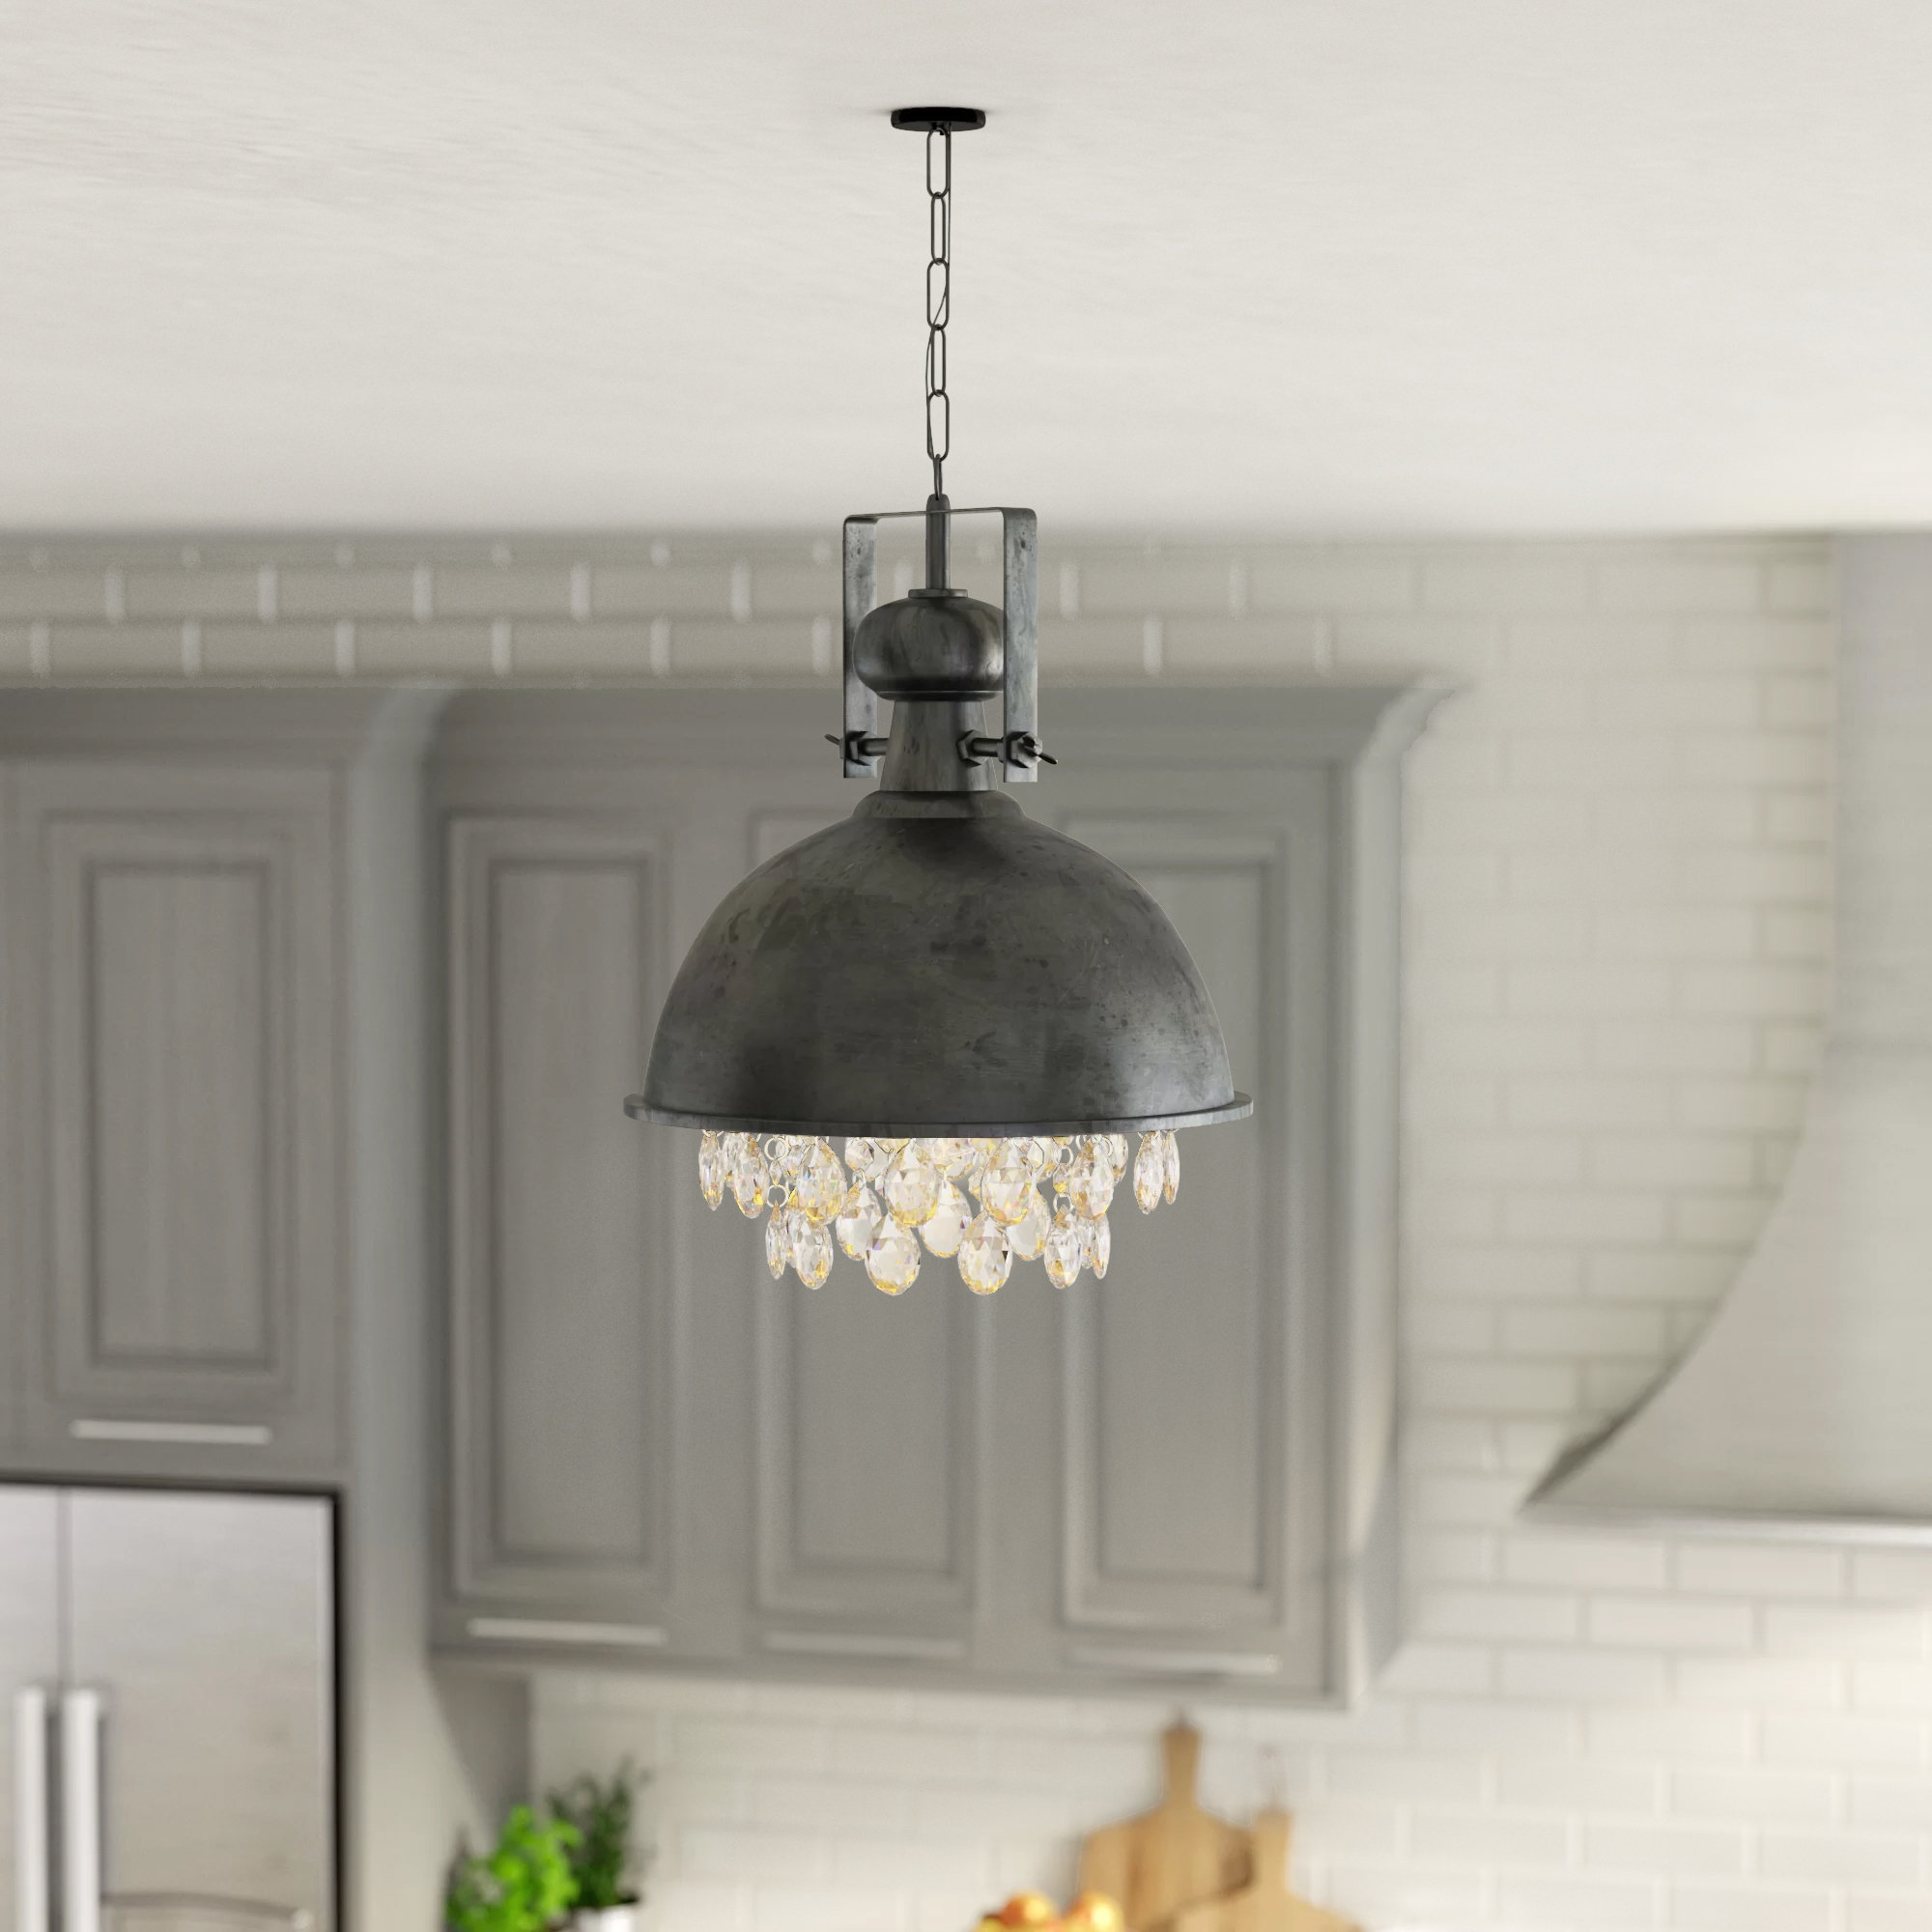 Rosenbloom 1 – Light Dome Pendant Pertaining To Well Liked Monadnock 1 Light Single Dome Pendants (View 11 of 25)